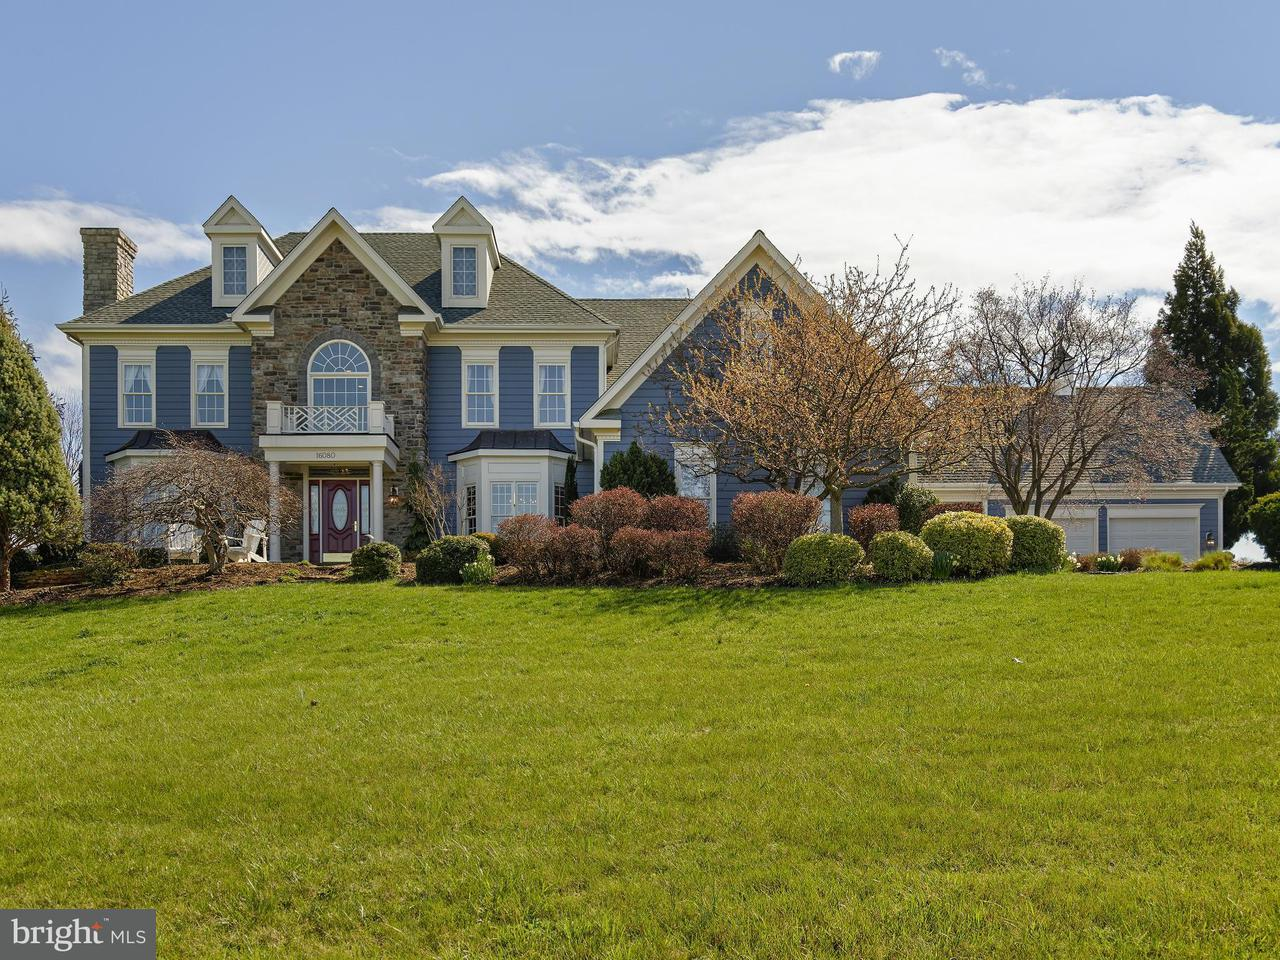 Single Family Home for Sale at 16080 GOLD CUP Lane 16080 GOLD CUP Lane Paeonian Springs, Virginia 20129 United States